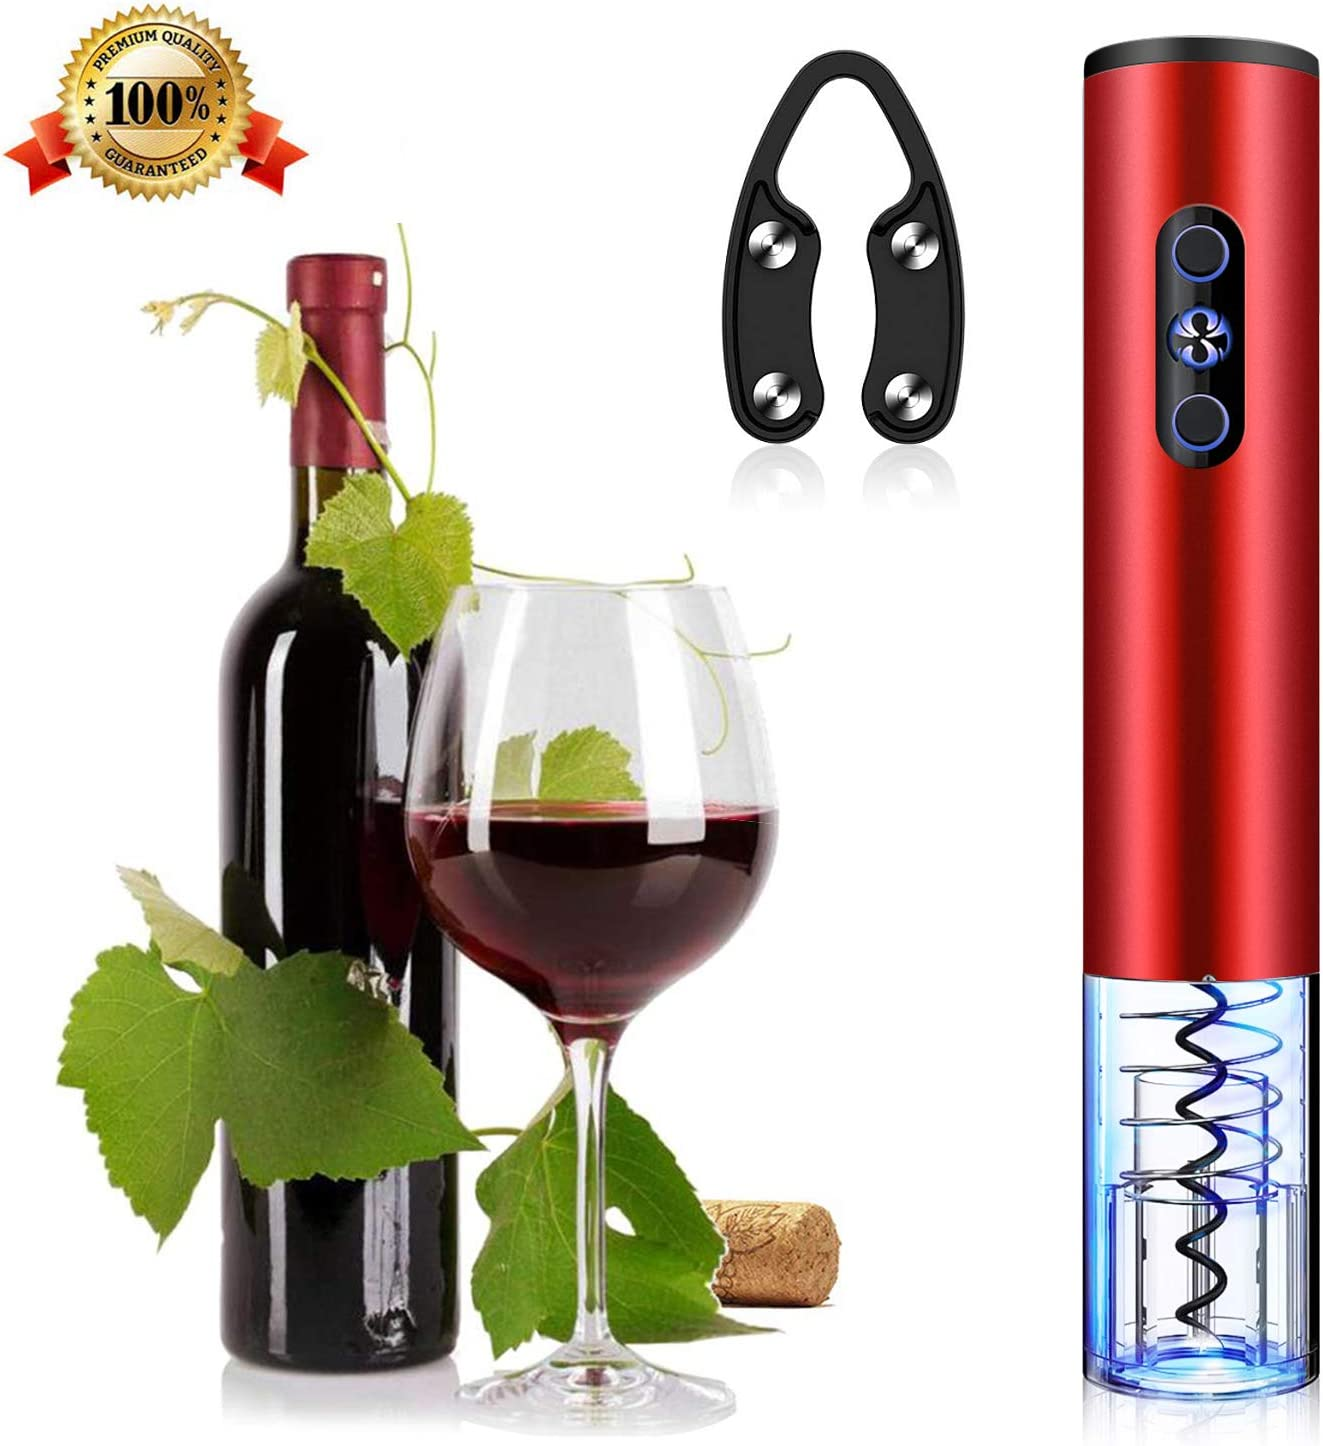 Electric Wine Opener, 6s Open the Cap Electric Wine Bottle Corkscrew, Air Pressure Pump Opener with Foil Cutter, Suit All kinds of Wine Red Liquor Support Party Marriage Meeting Dinner Winery Bar. Red